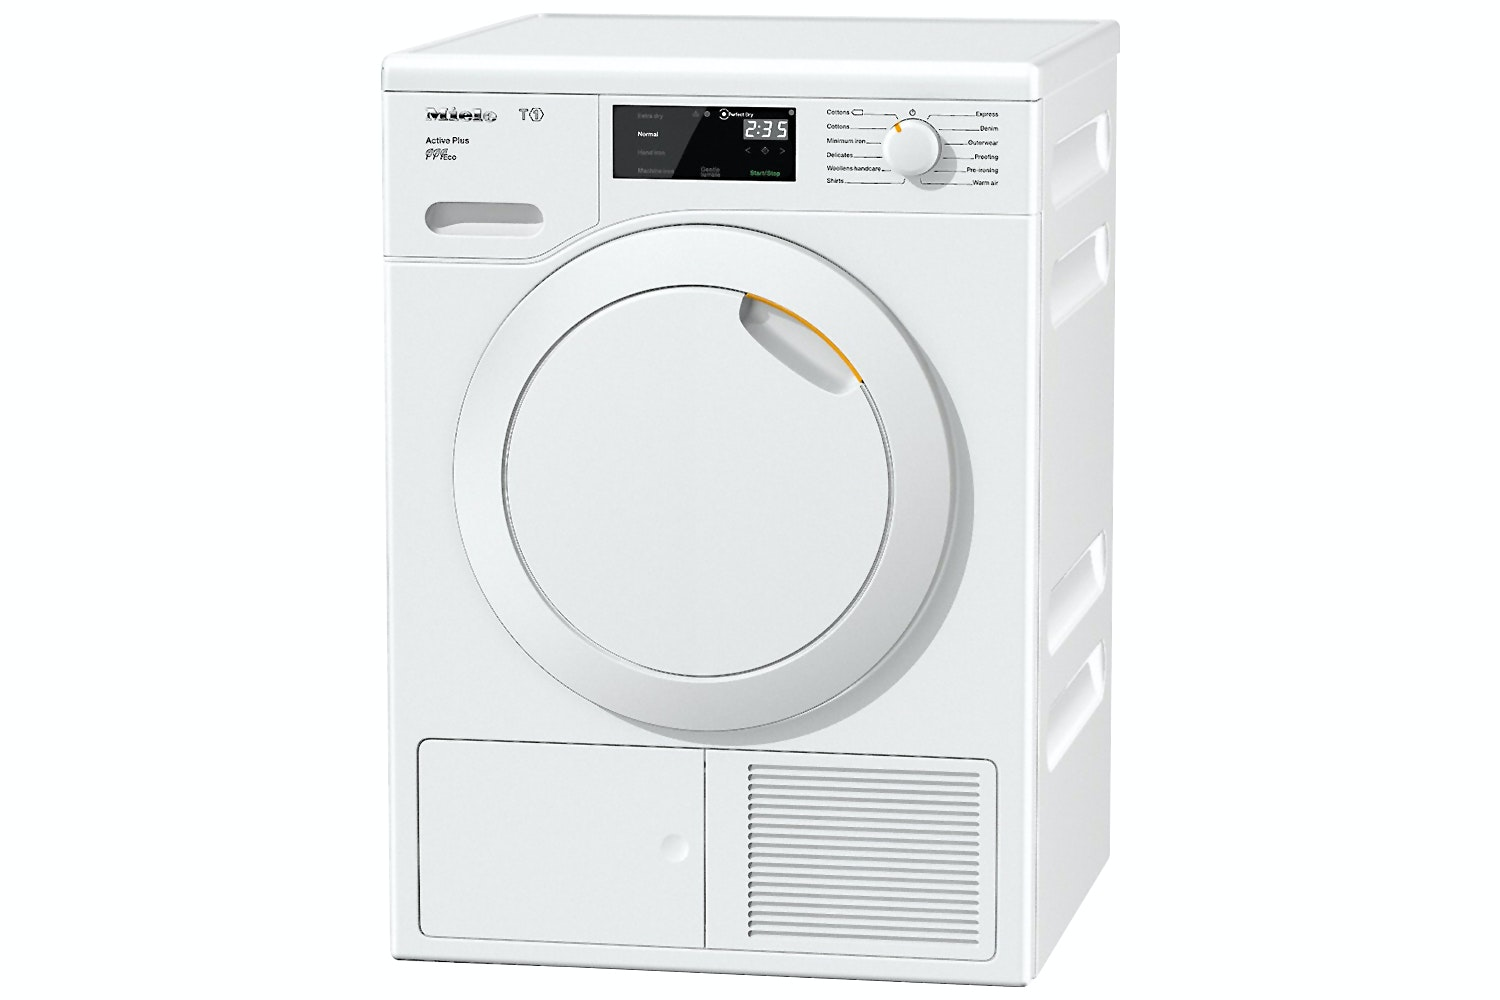 Miele TCE520WP Active Plus  T1 Heat-pump tumble dryer   A+++ and EcoDry technology for max. efficiency – for the life of your appliance